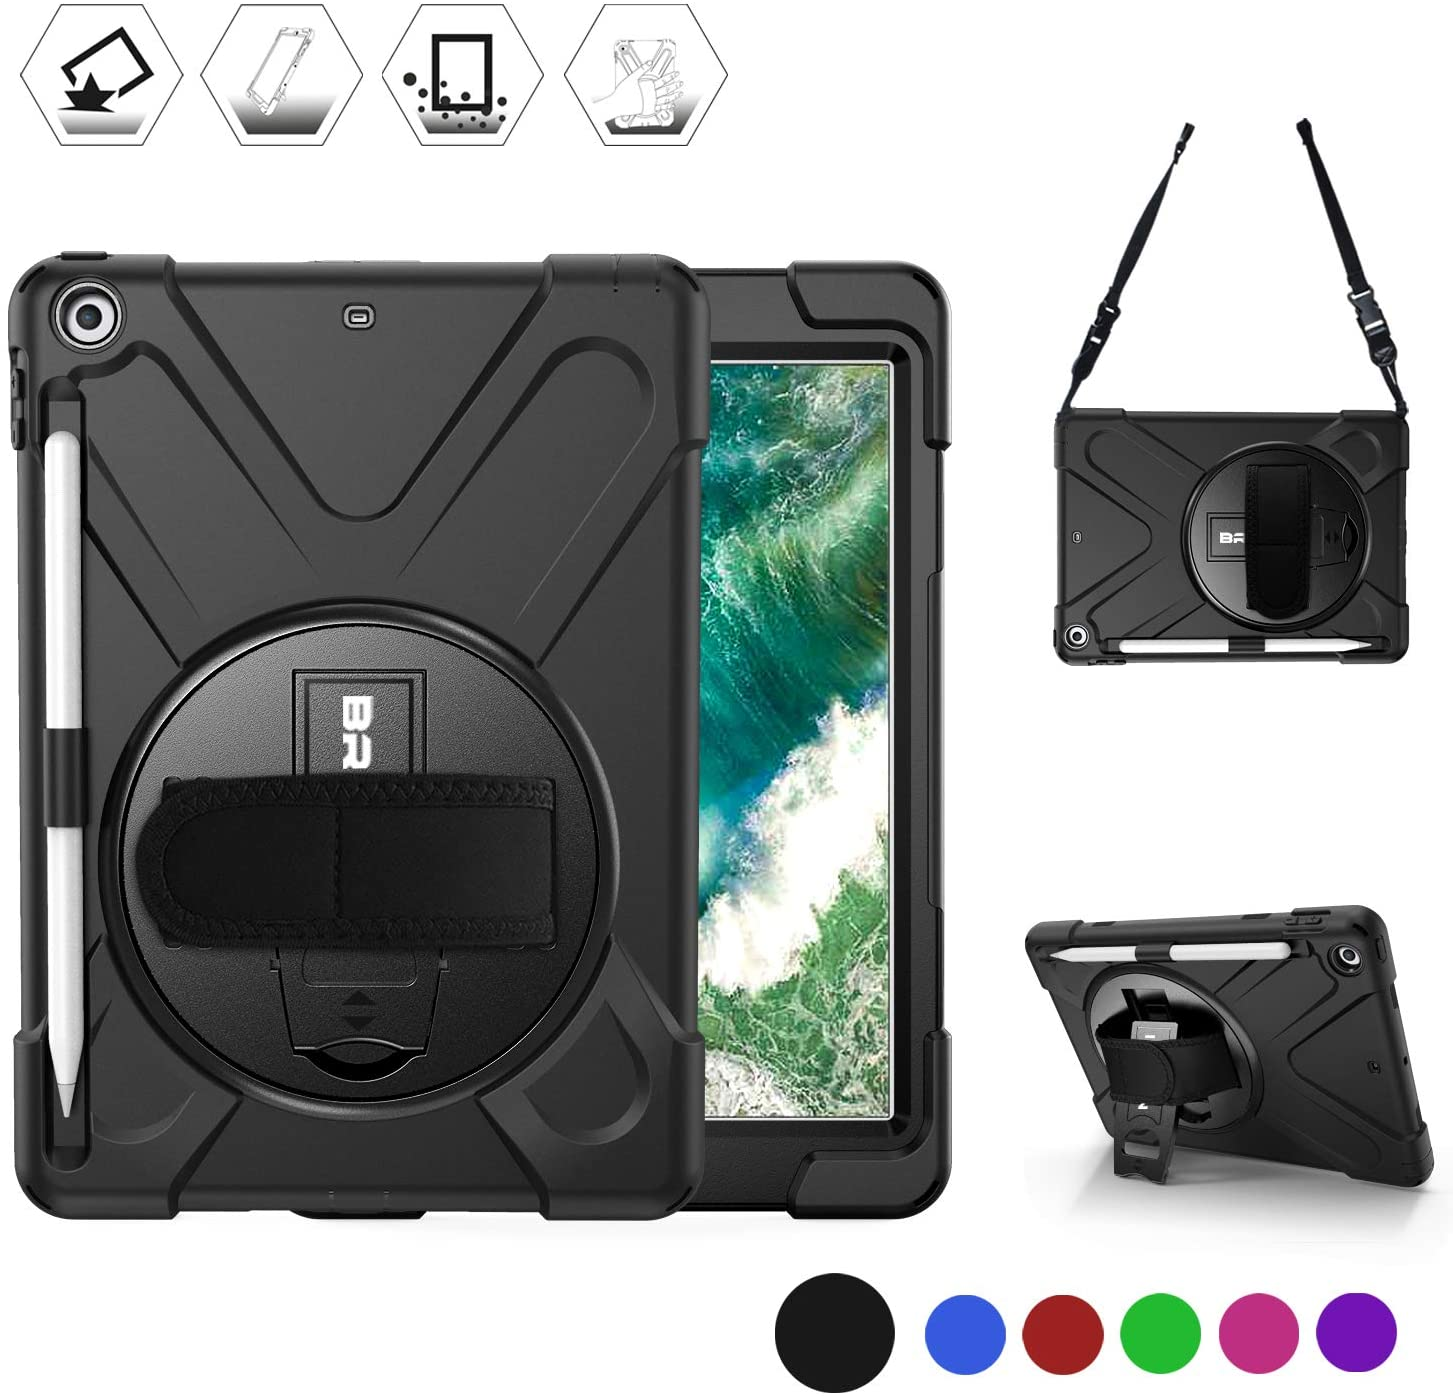 BRAECN iPad Case 6th/5th Generation,iPad 9.7 2018/2017 Case-Heavy Duty Shockproof Rugged Case with Pencil Holder,Shoulder Strap & Rotating Hand Strap/Stand for iPad Case A1893/A1954/A1822/A1823 -Black